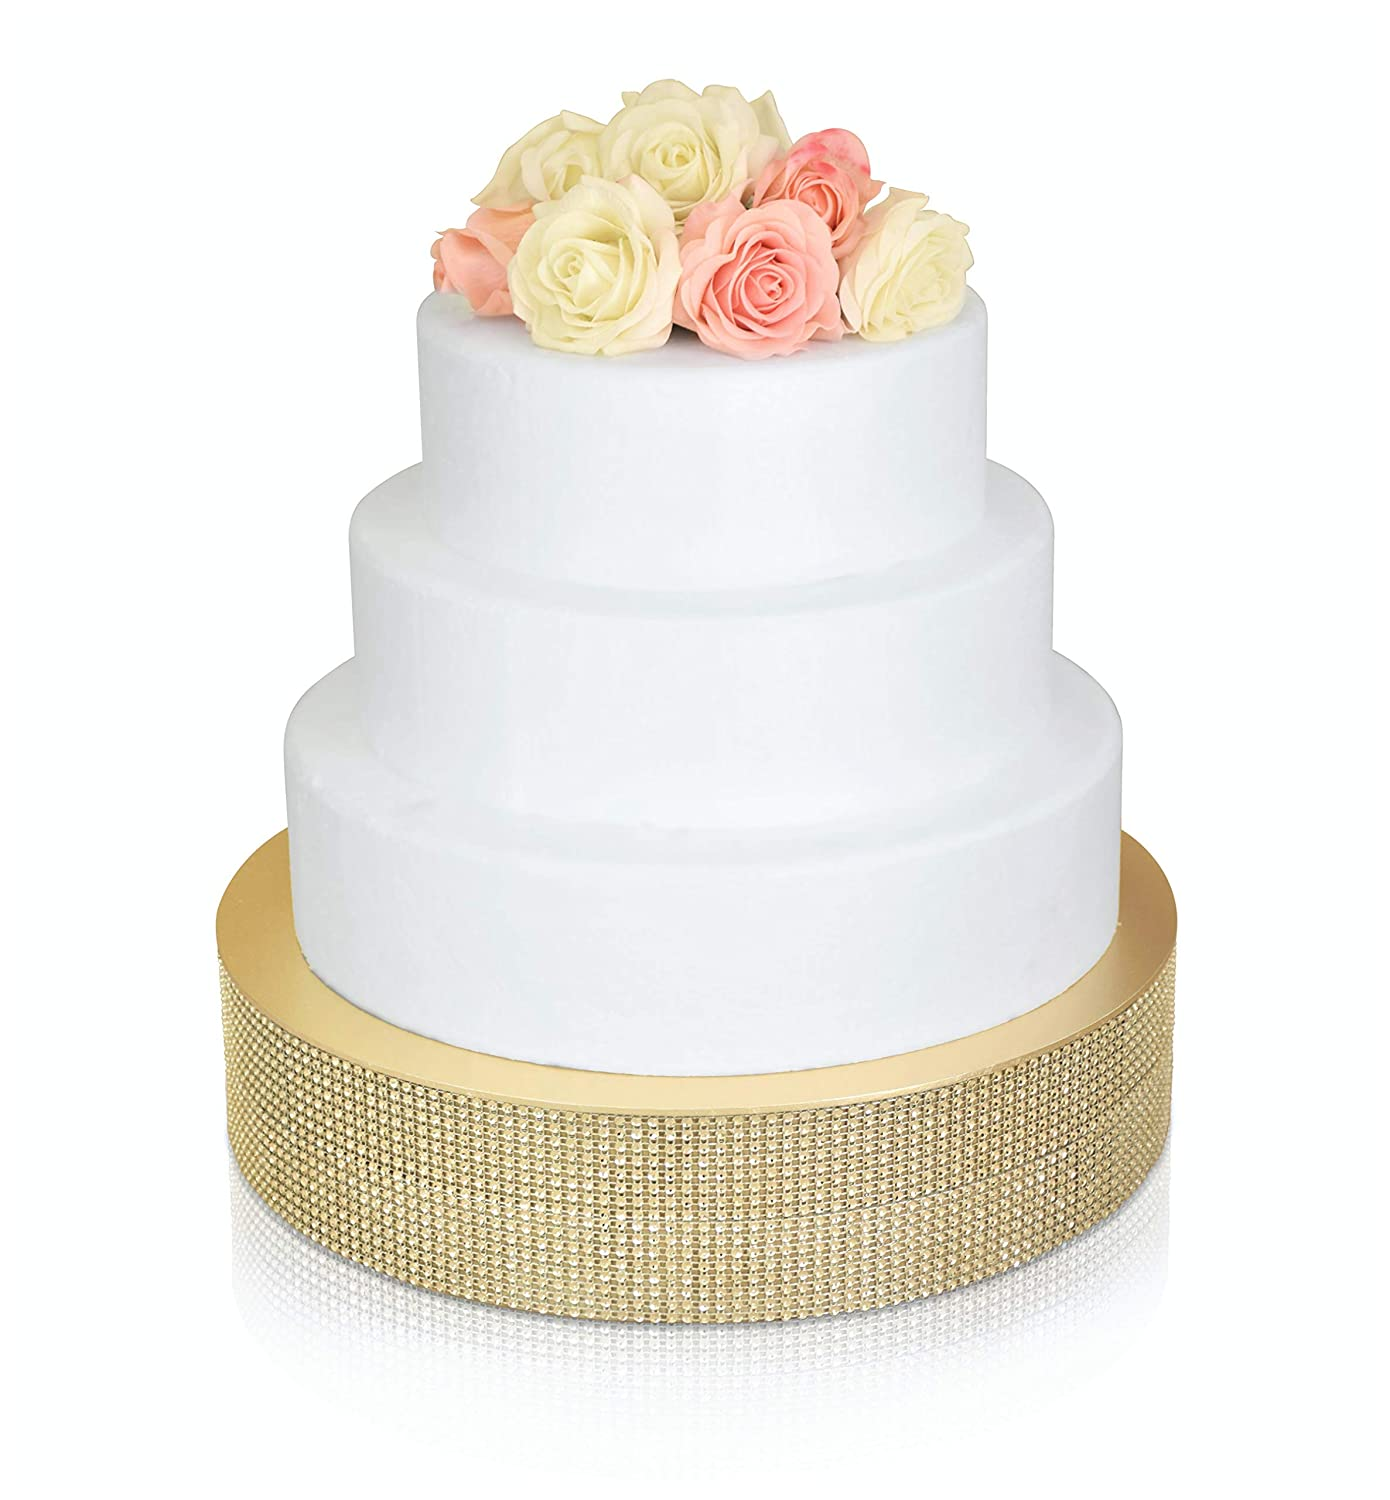 OCCASIONS Bling Wedding Cake Stand (Holds 150 lbs), Cupcake Base, Decorating Party Centerpiece (12 inch Round, Soft Gold) 81xVitd9h7L